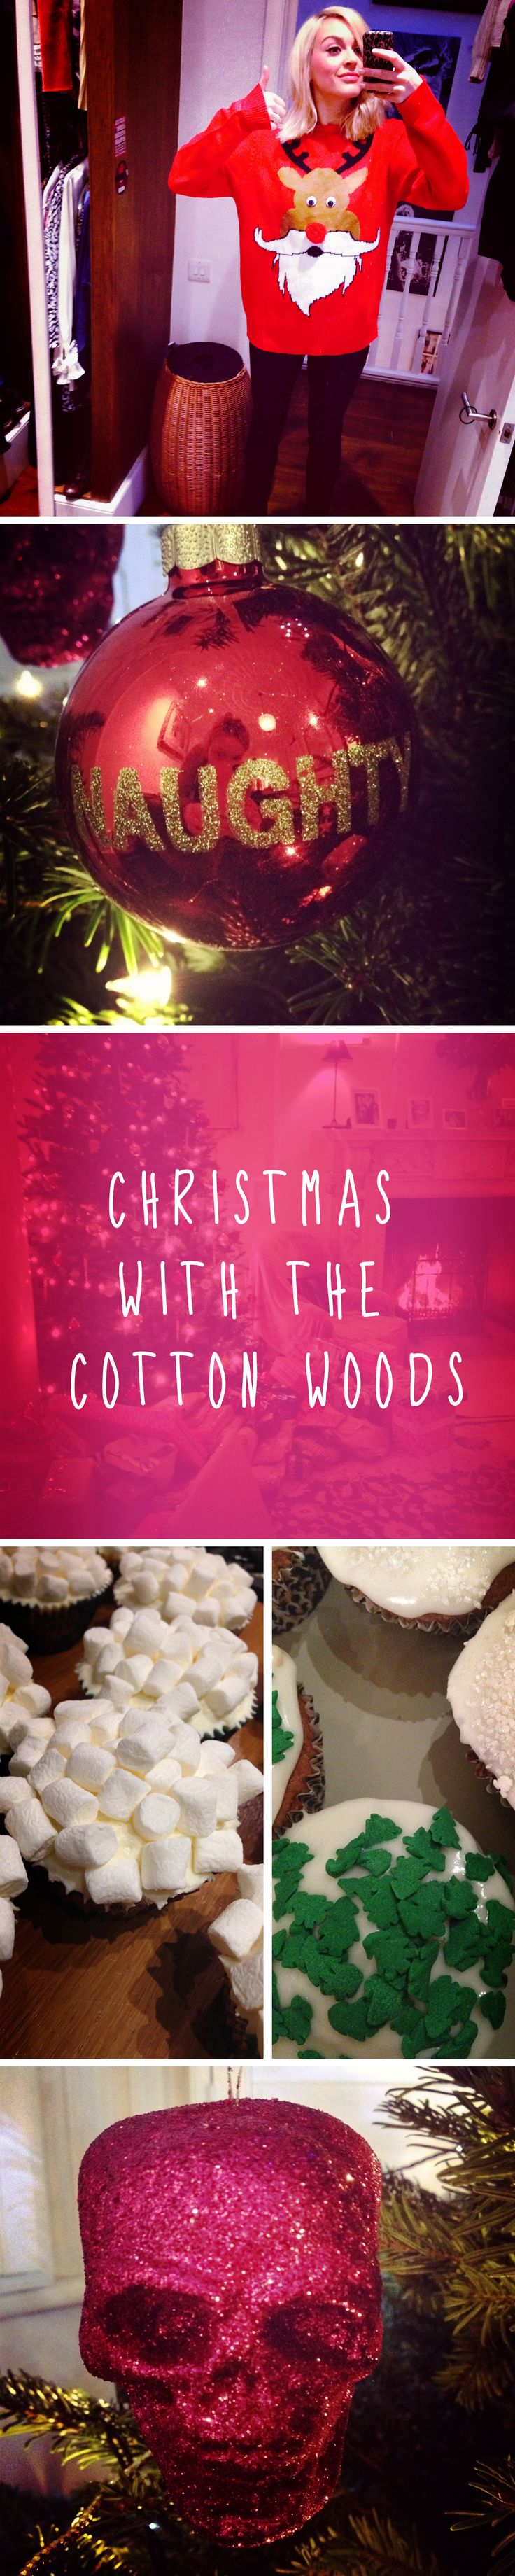 At the mere mention of Christmas I can smell cinnamon, taste mulled wine and feel the warmth of a cosy fire. I love Christmas. I start getting excited about it in October, planning how I'll decorate the house and what food we will cook.